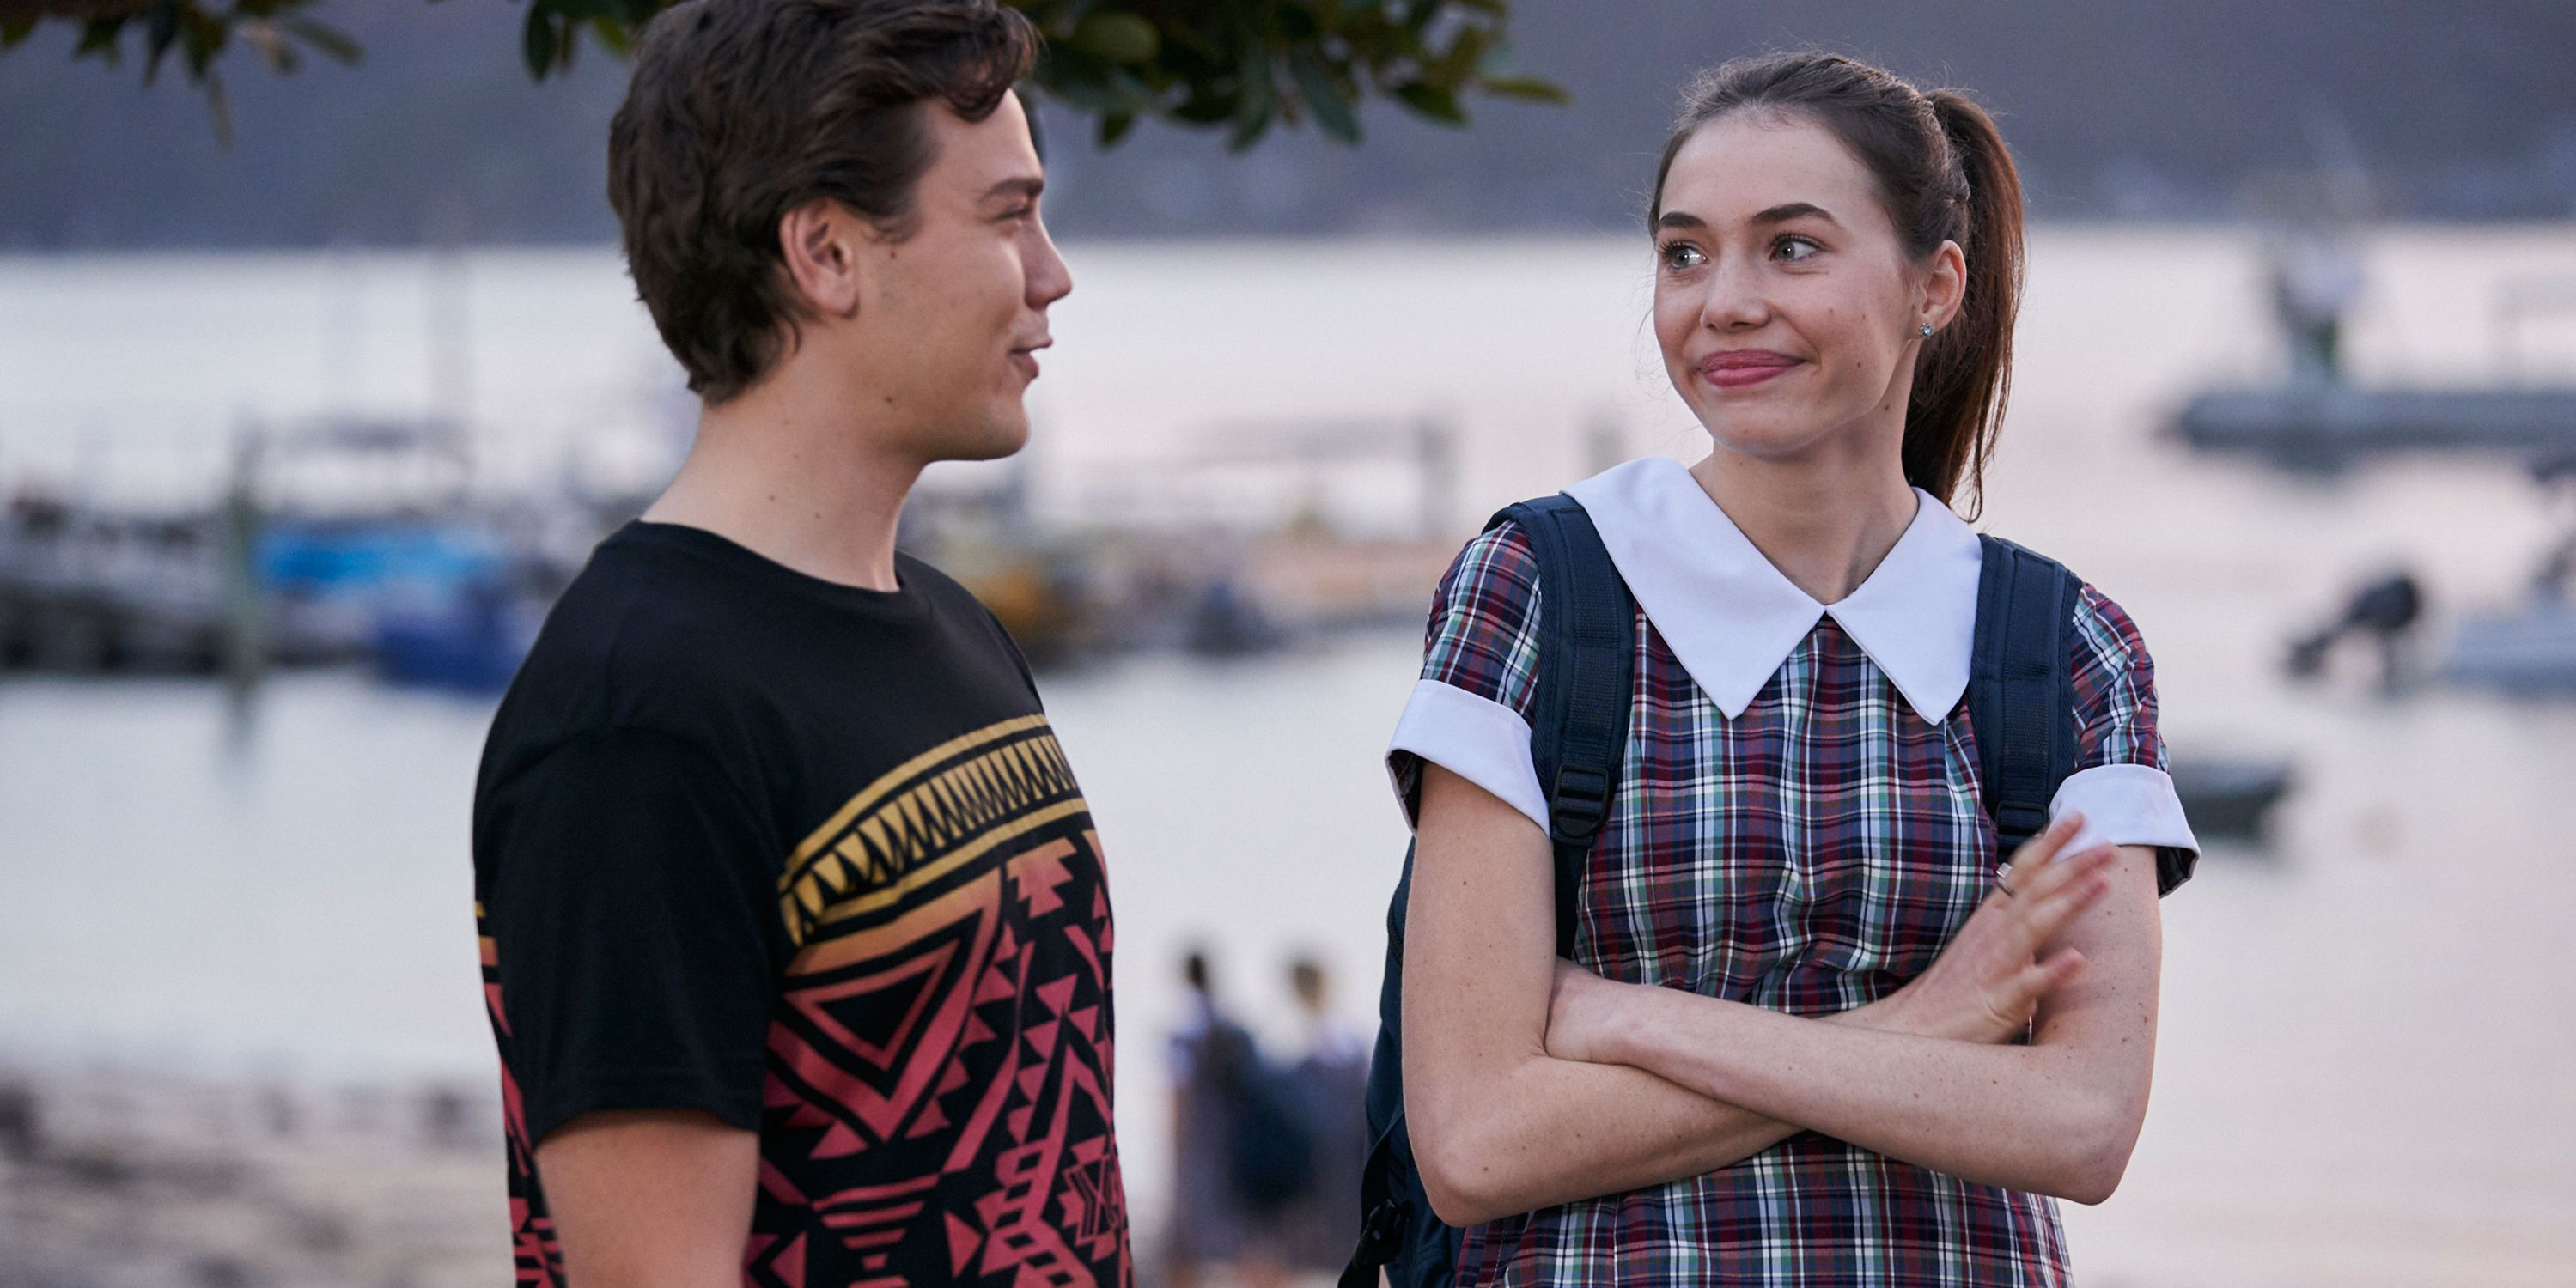 Ryder Jackson and Coco Astoni wait for his exam results in Home and Away